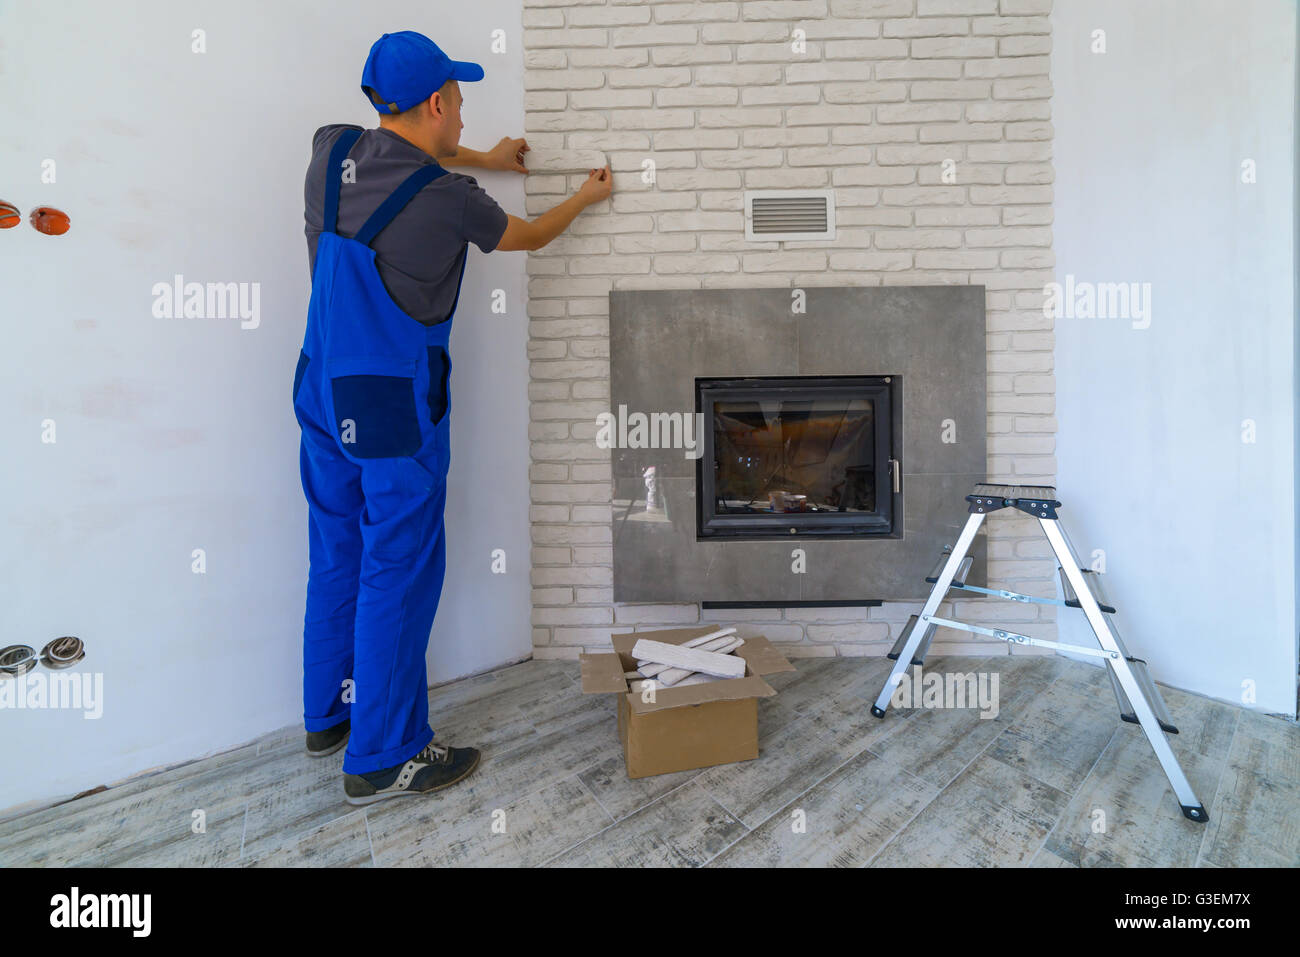 Fireplace installing in white brick wall - Stock Image